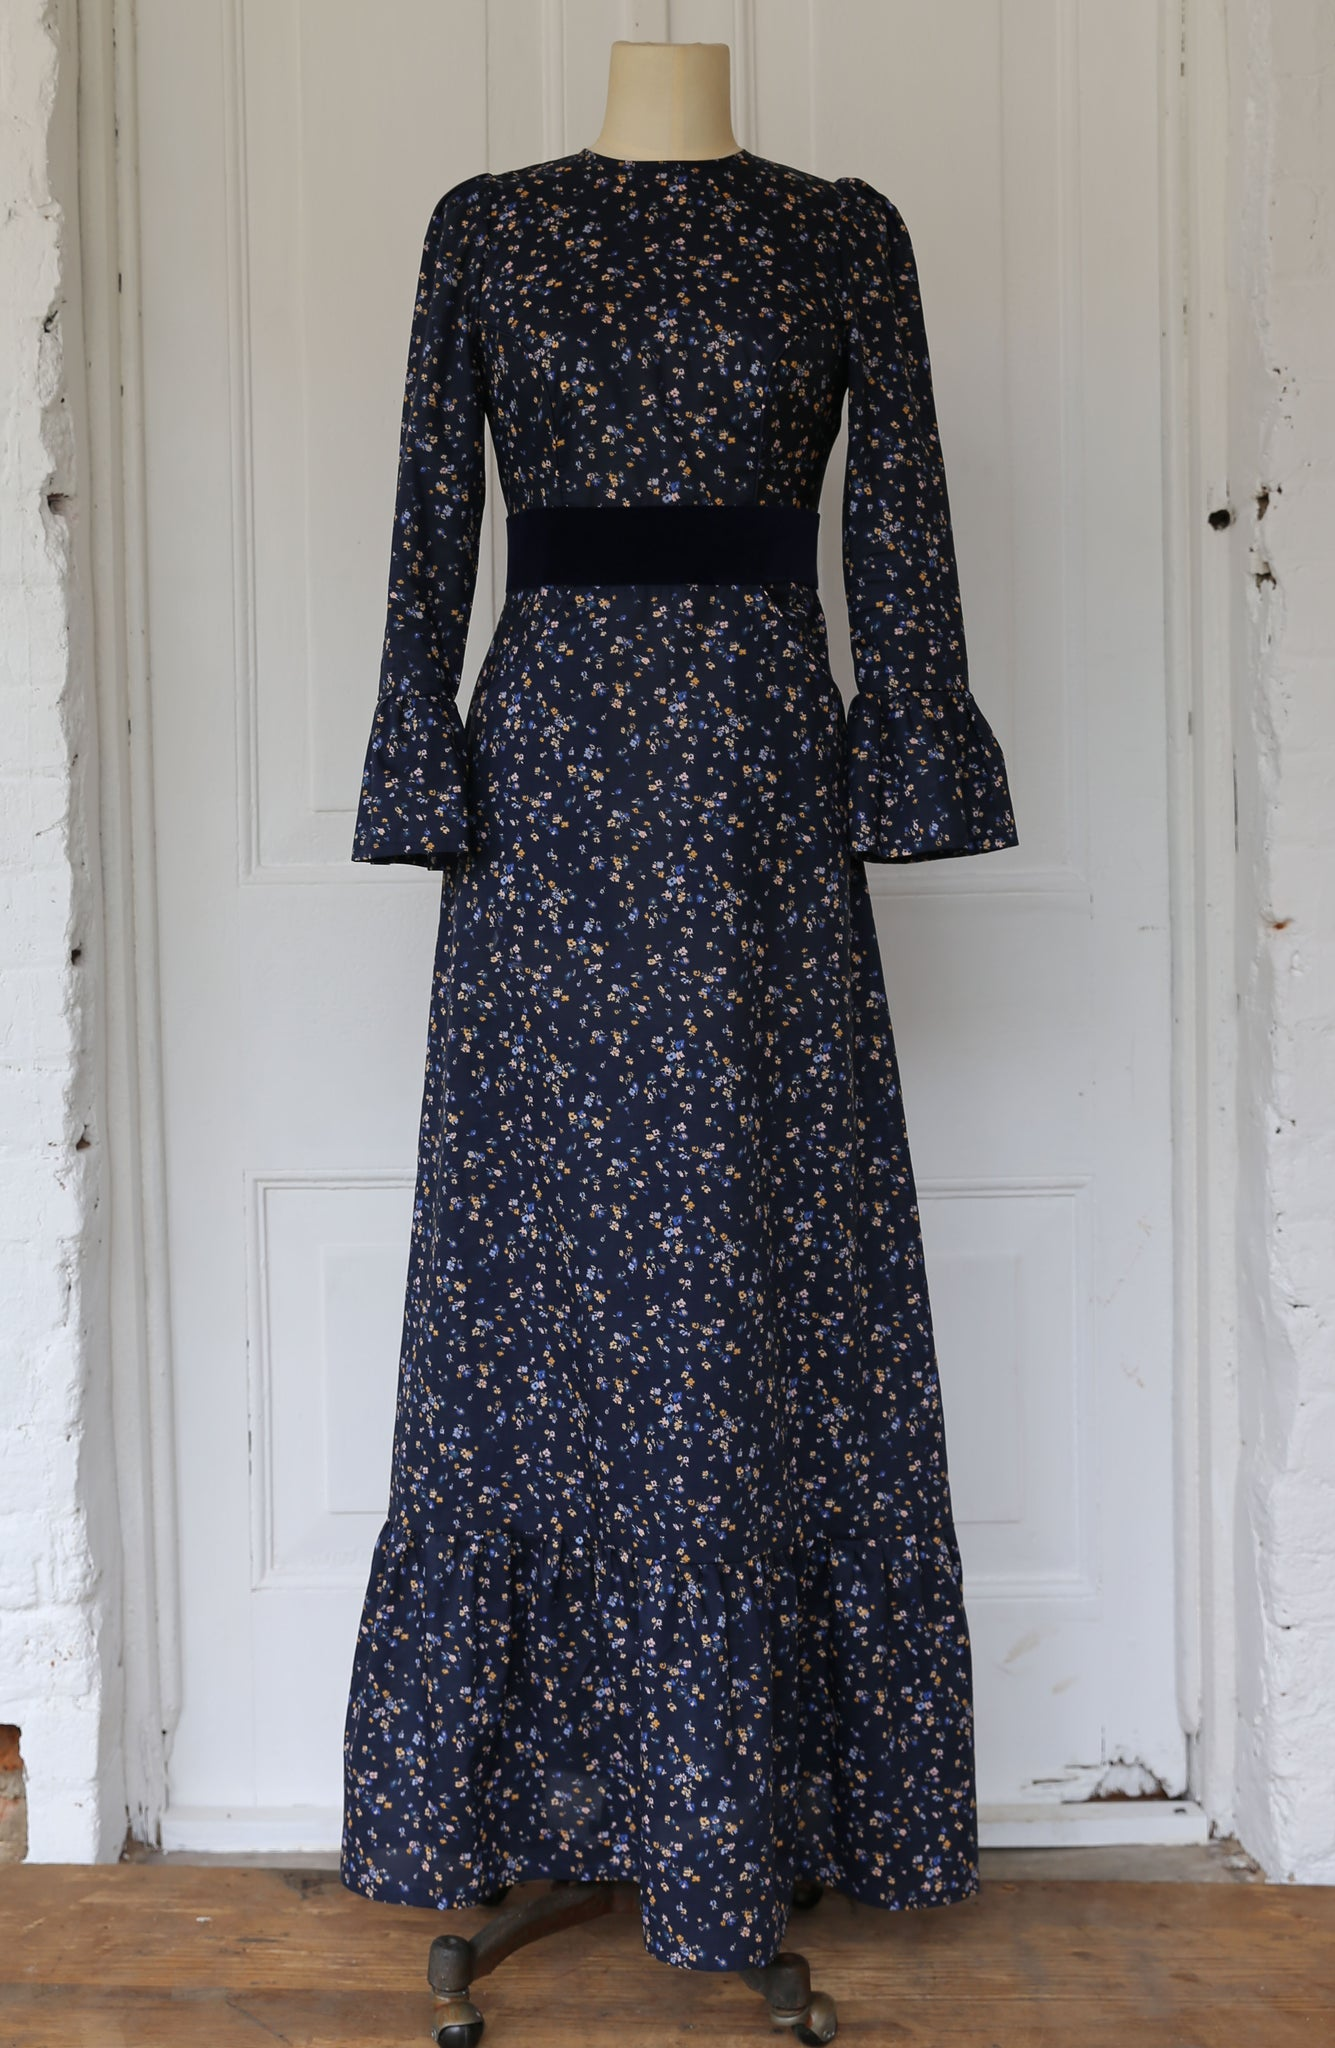 Countess Olympia dress SOLD OUT